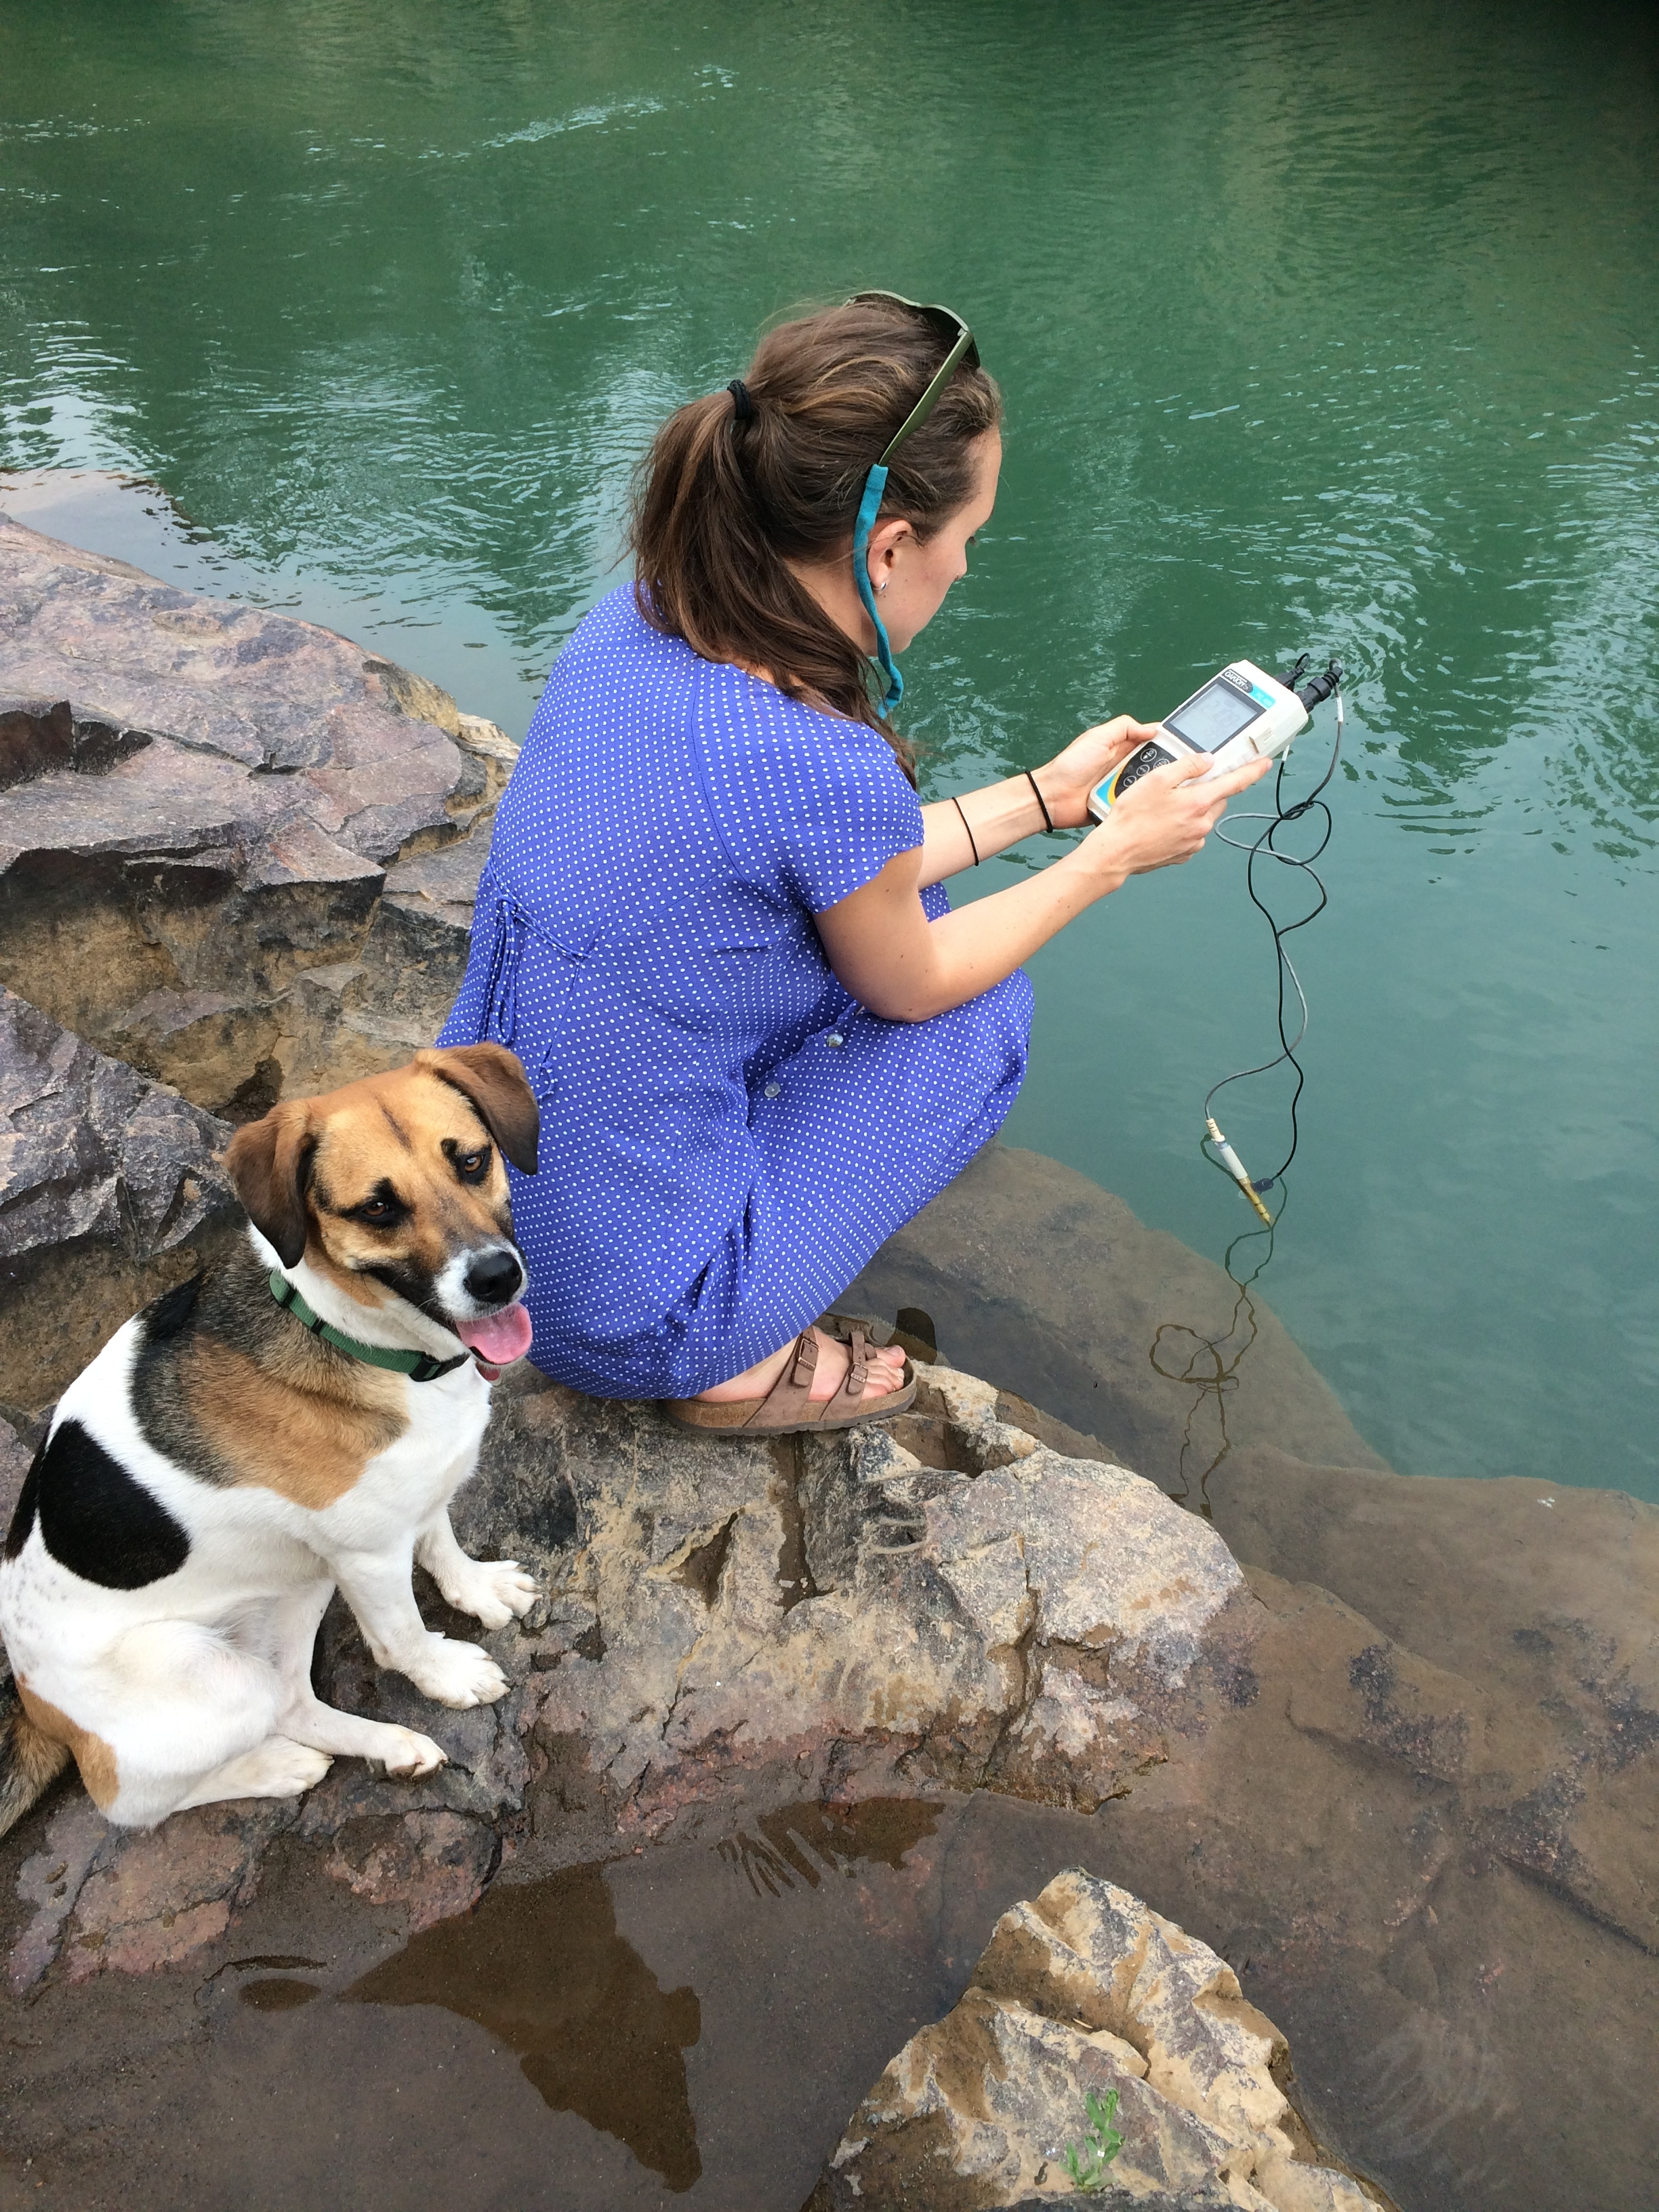 Moki joined Laurel Sebastian in collecting samples and measuring ph, conductivity and temperature of the Animas River and Barker's Bridge, above the confluence with Hermosa Creek.